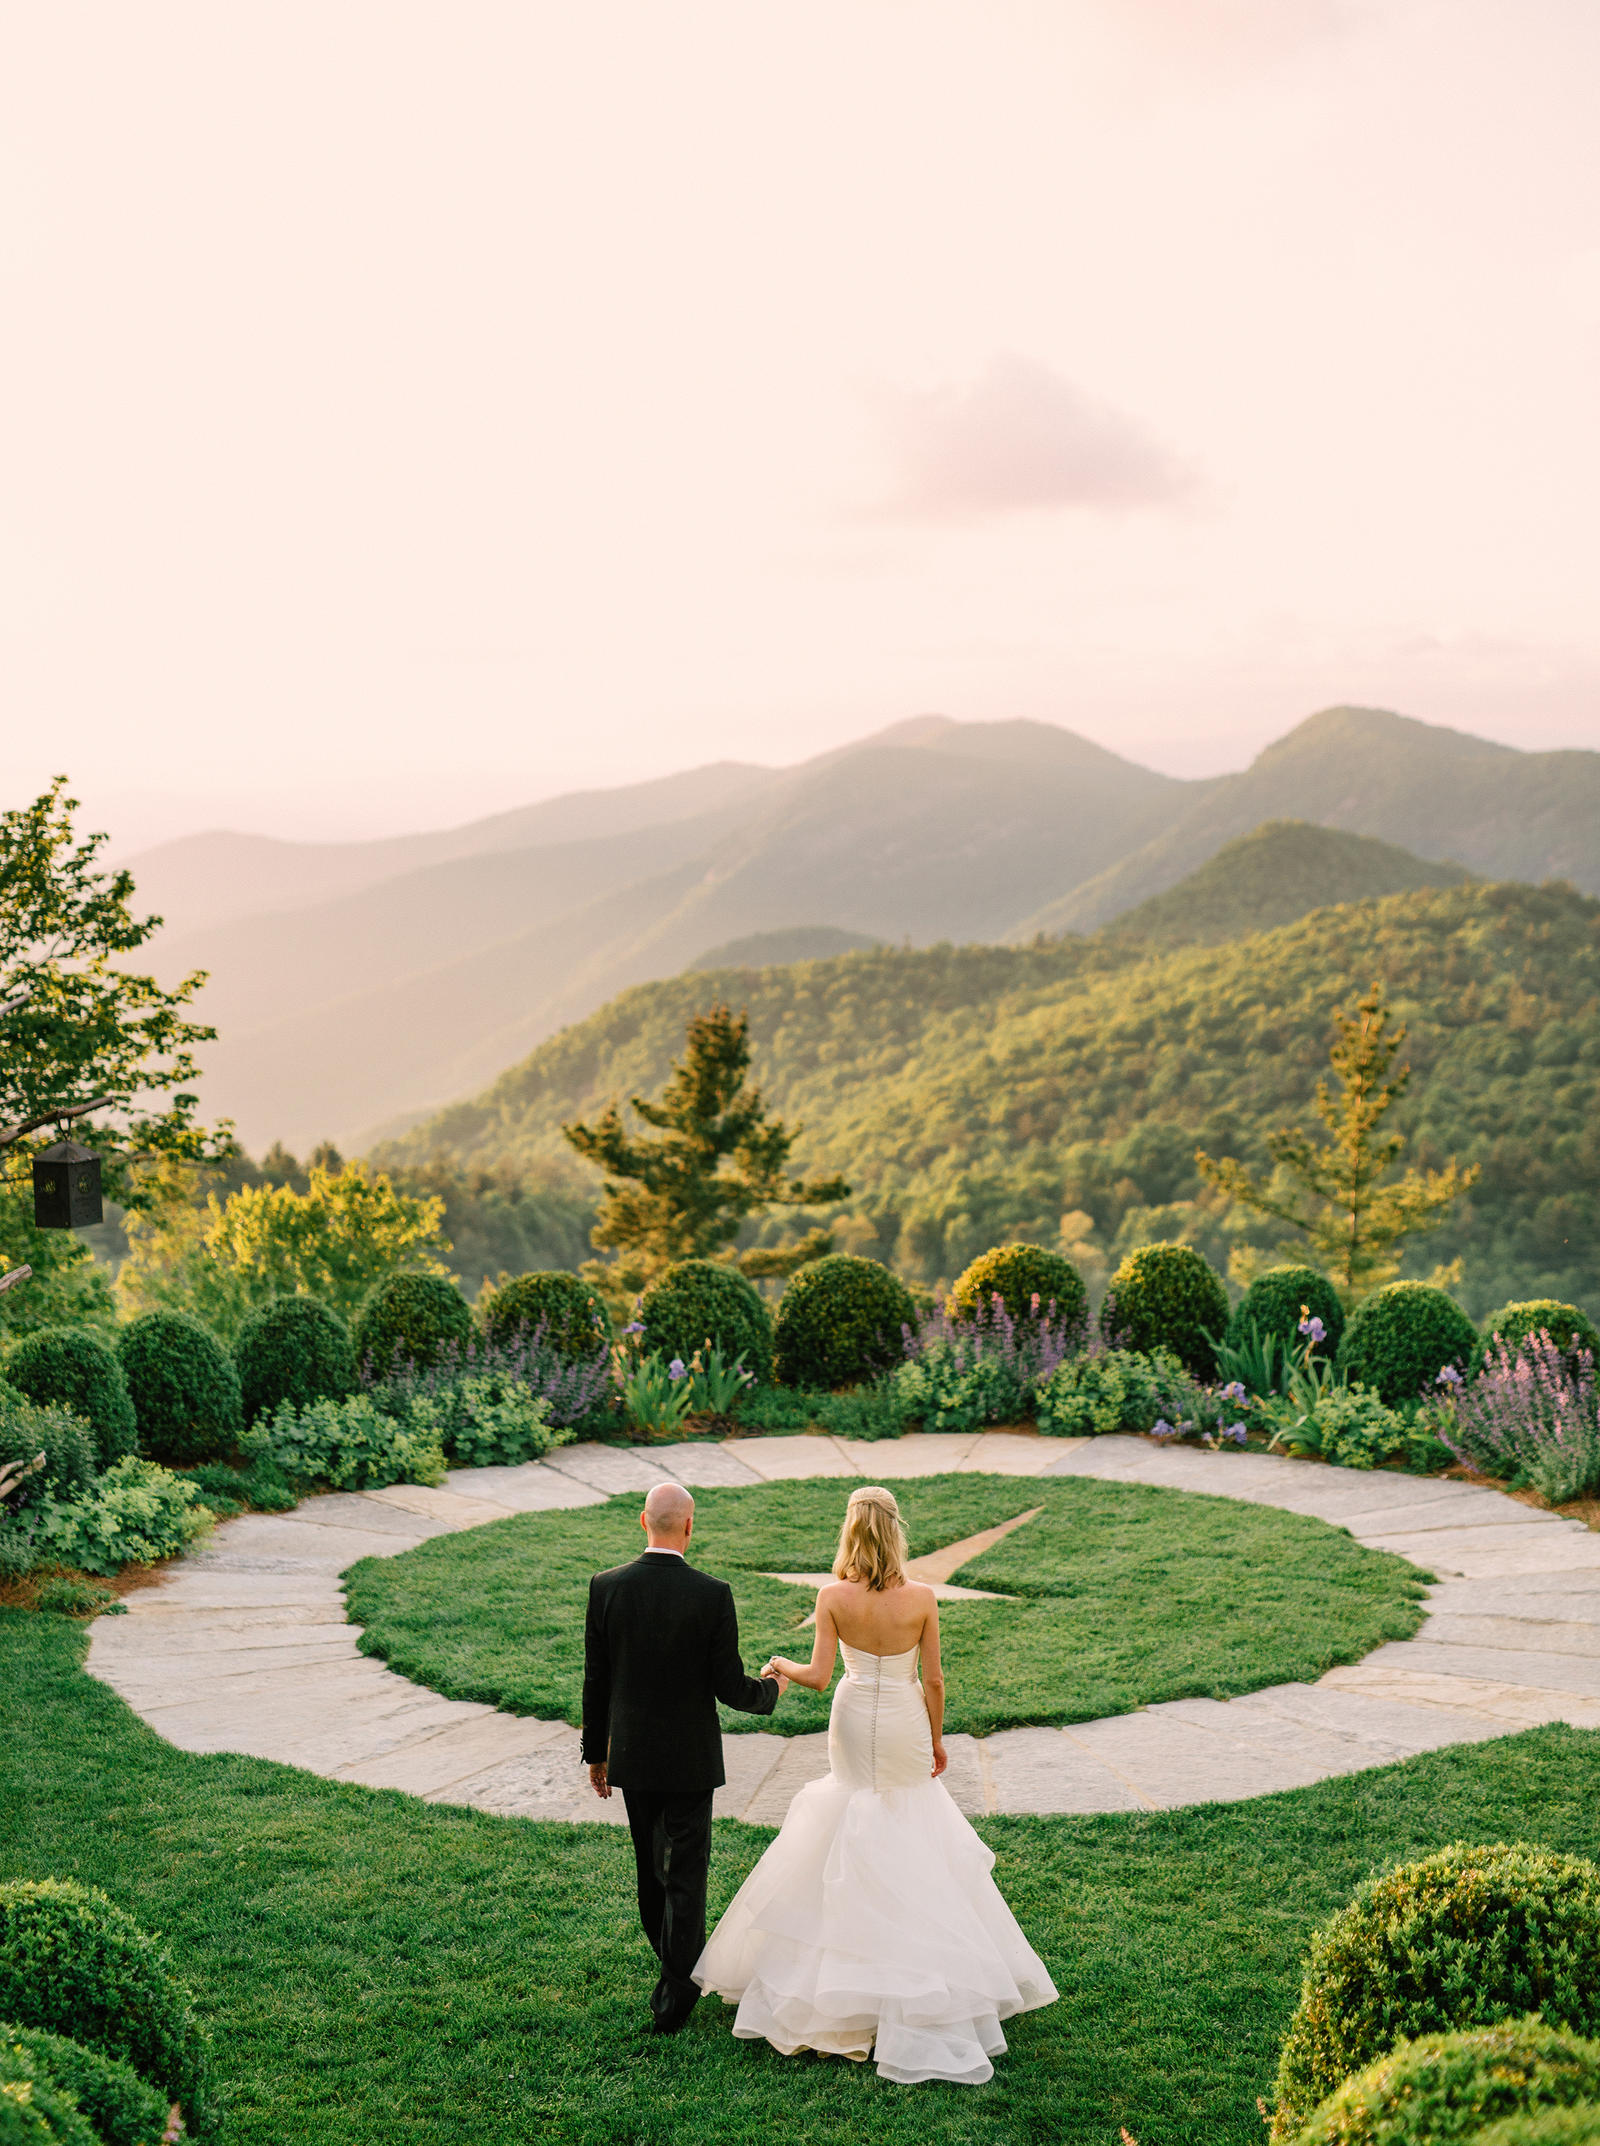 Wedding Photography | A bride and groom walk out into a garden courtyard, overlooking mountains in the distance.